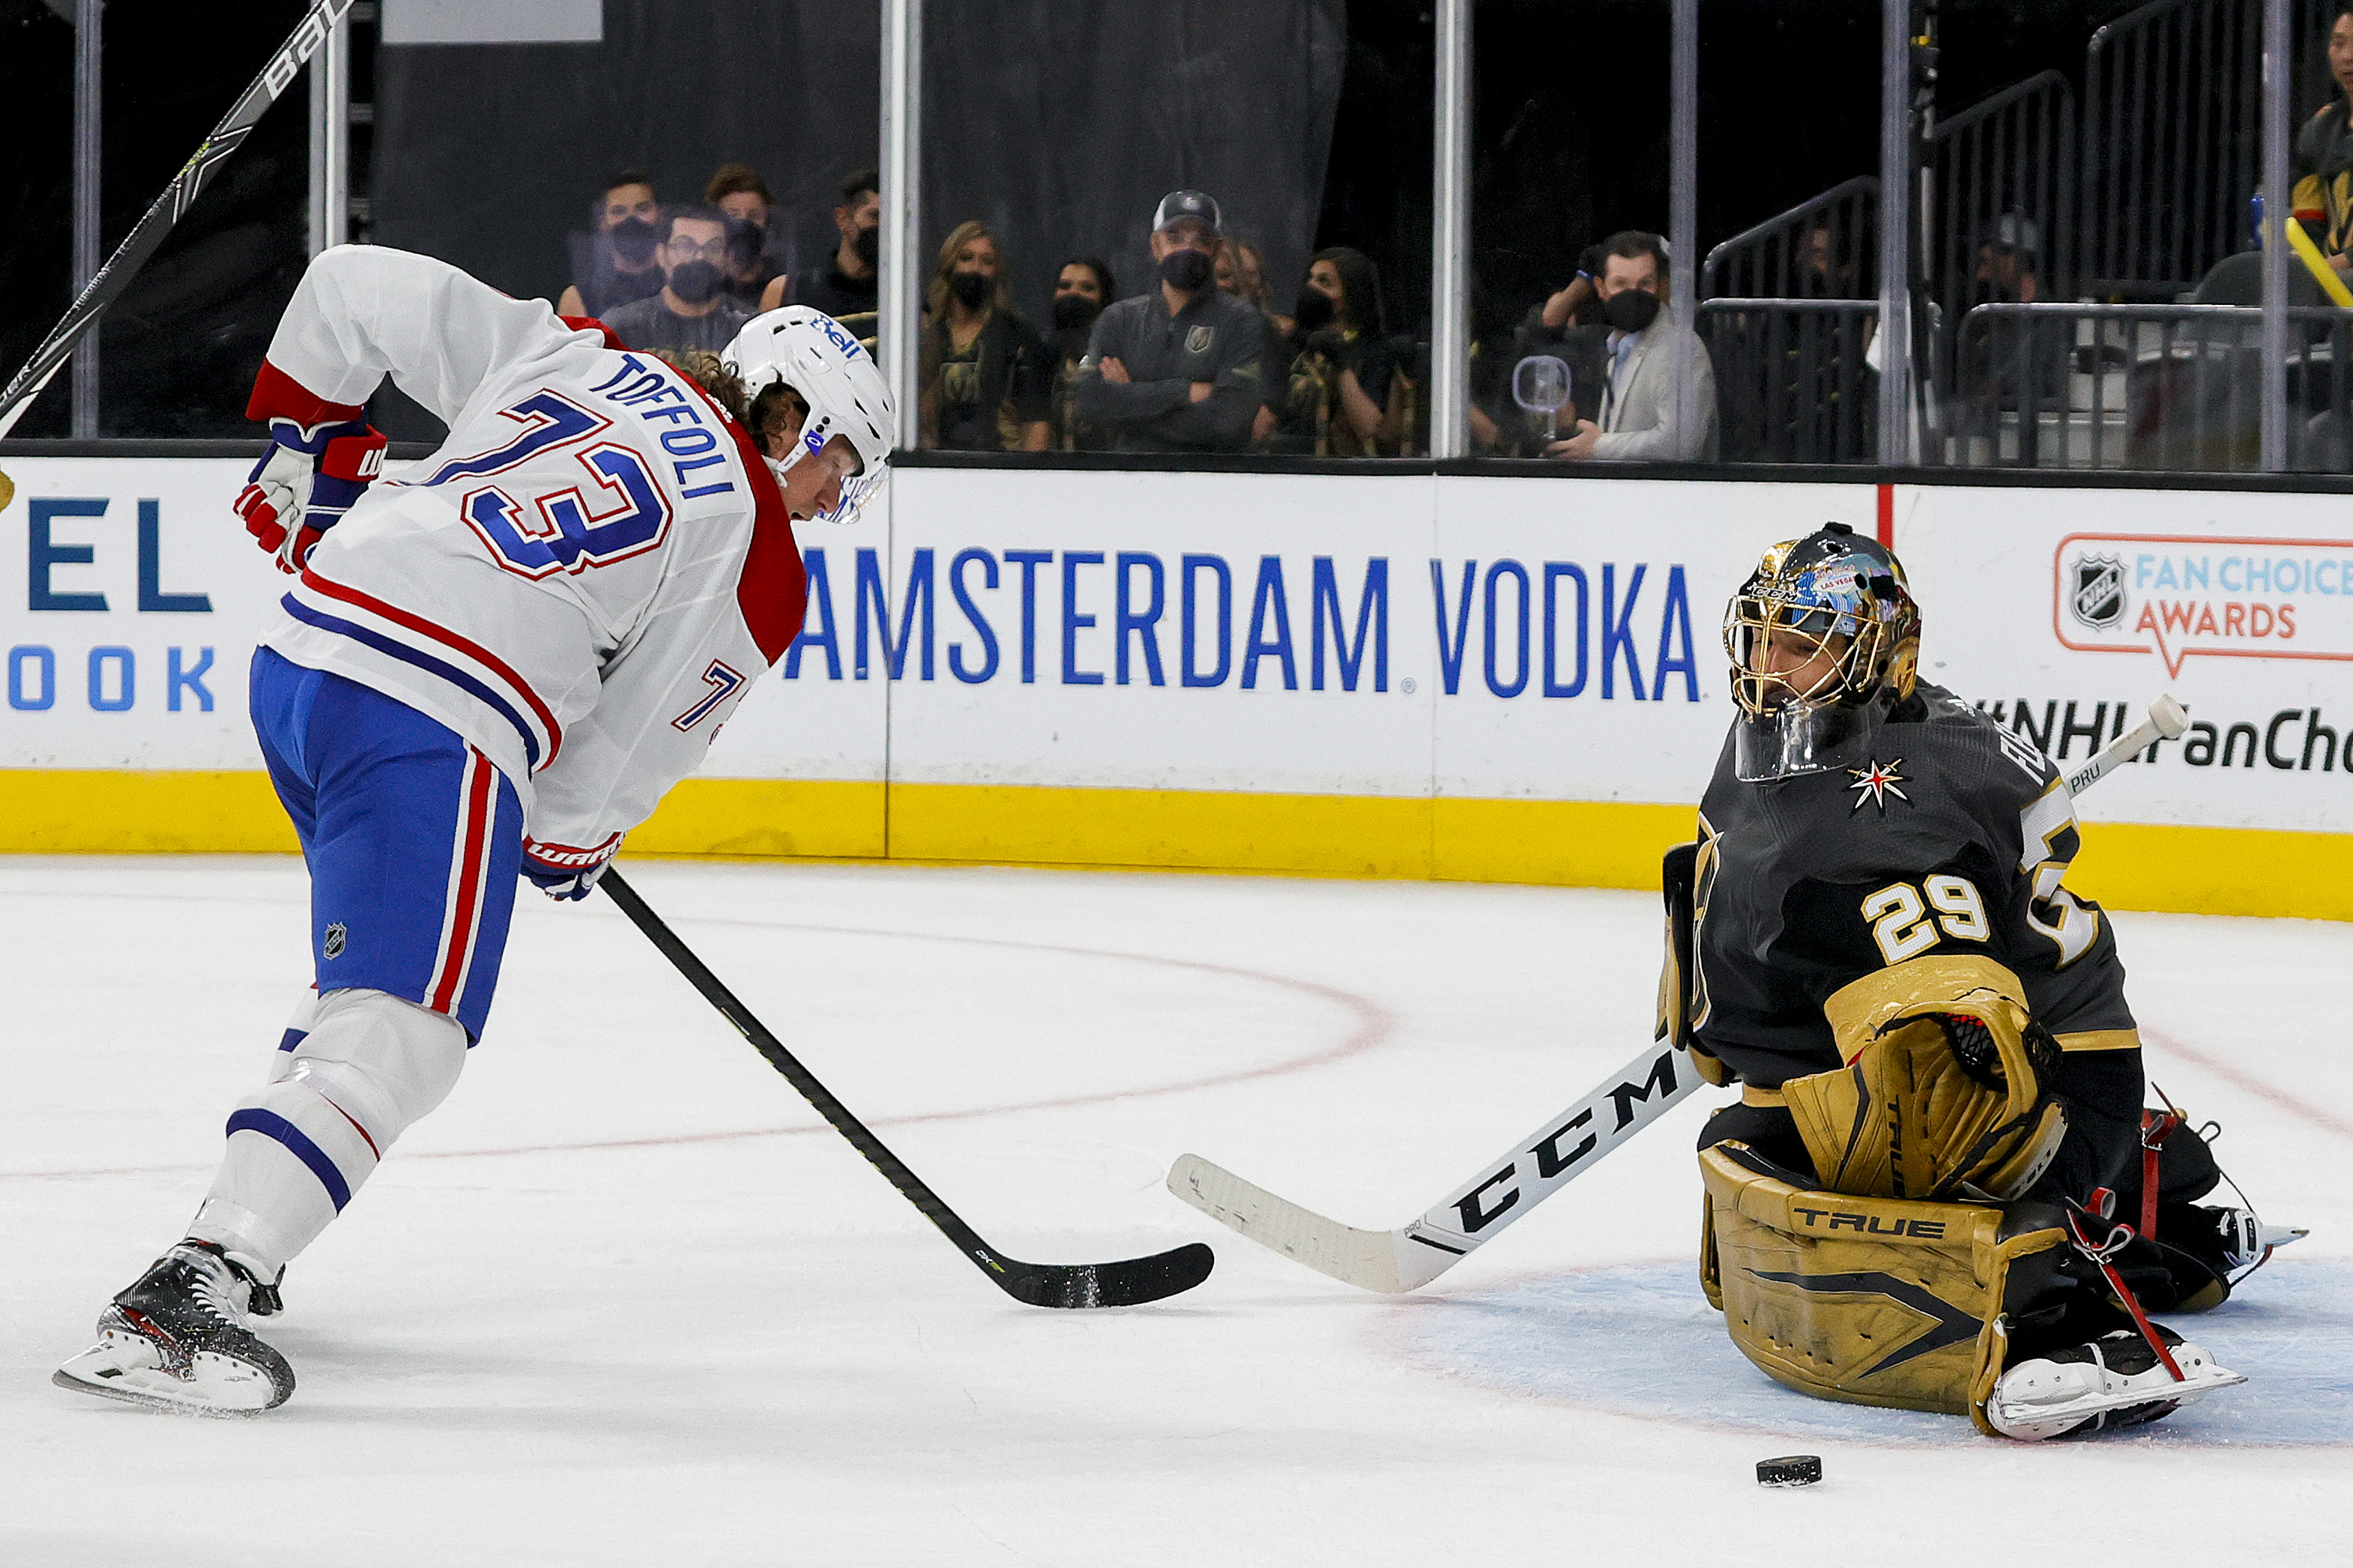 Marc-Andre Fleury #29 of the Vegas Golden Knights makes the save against Tyler Toffoli #73 of the Montreal Canadiens during the third period in Game One of the Stanley Cup Semifinals during the 2021 Stanley Cup Playoffs at T-Mobile Arena on June 14, 2021 in Las Vegas, Nevada.